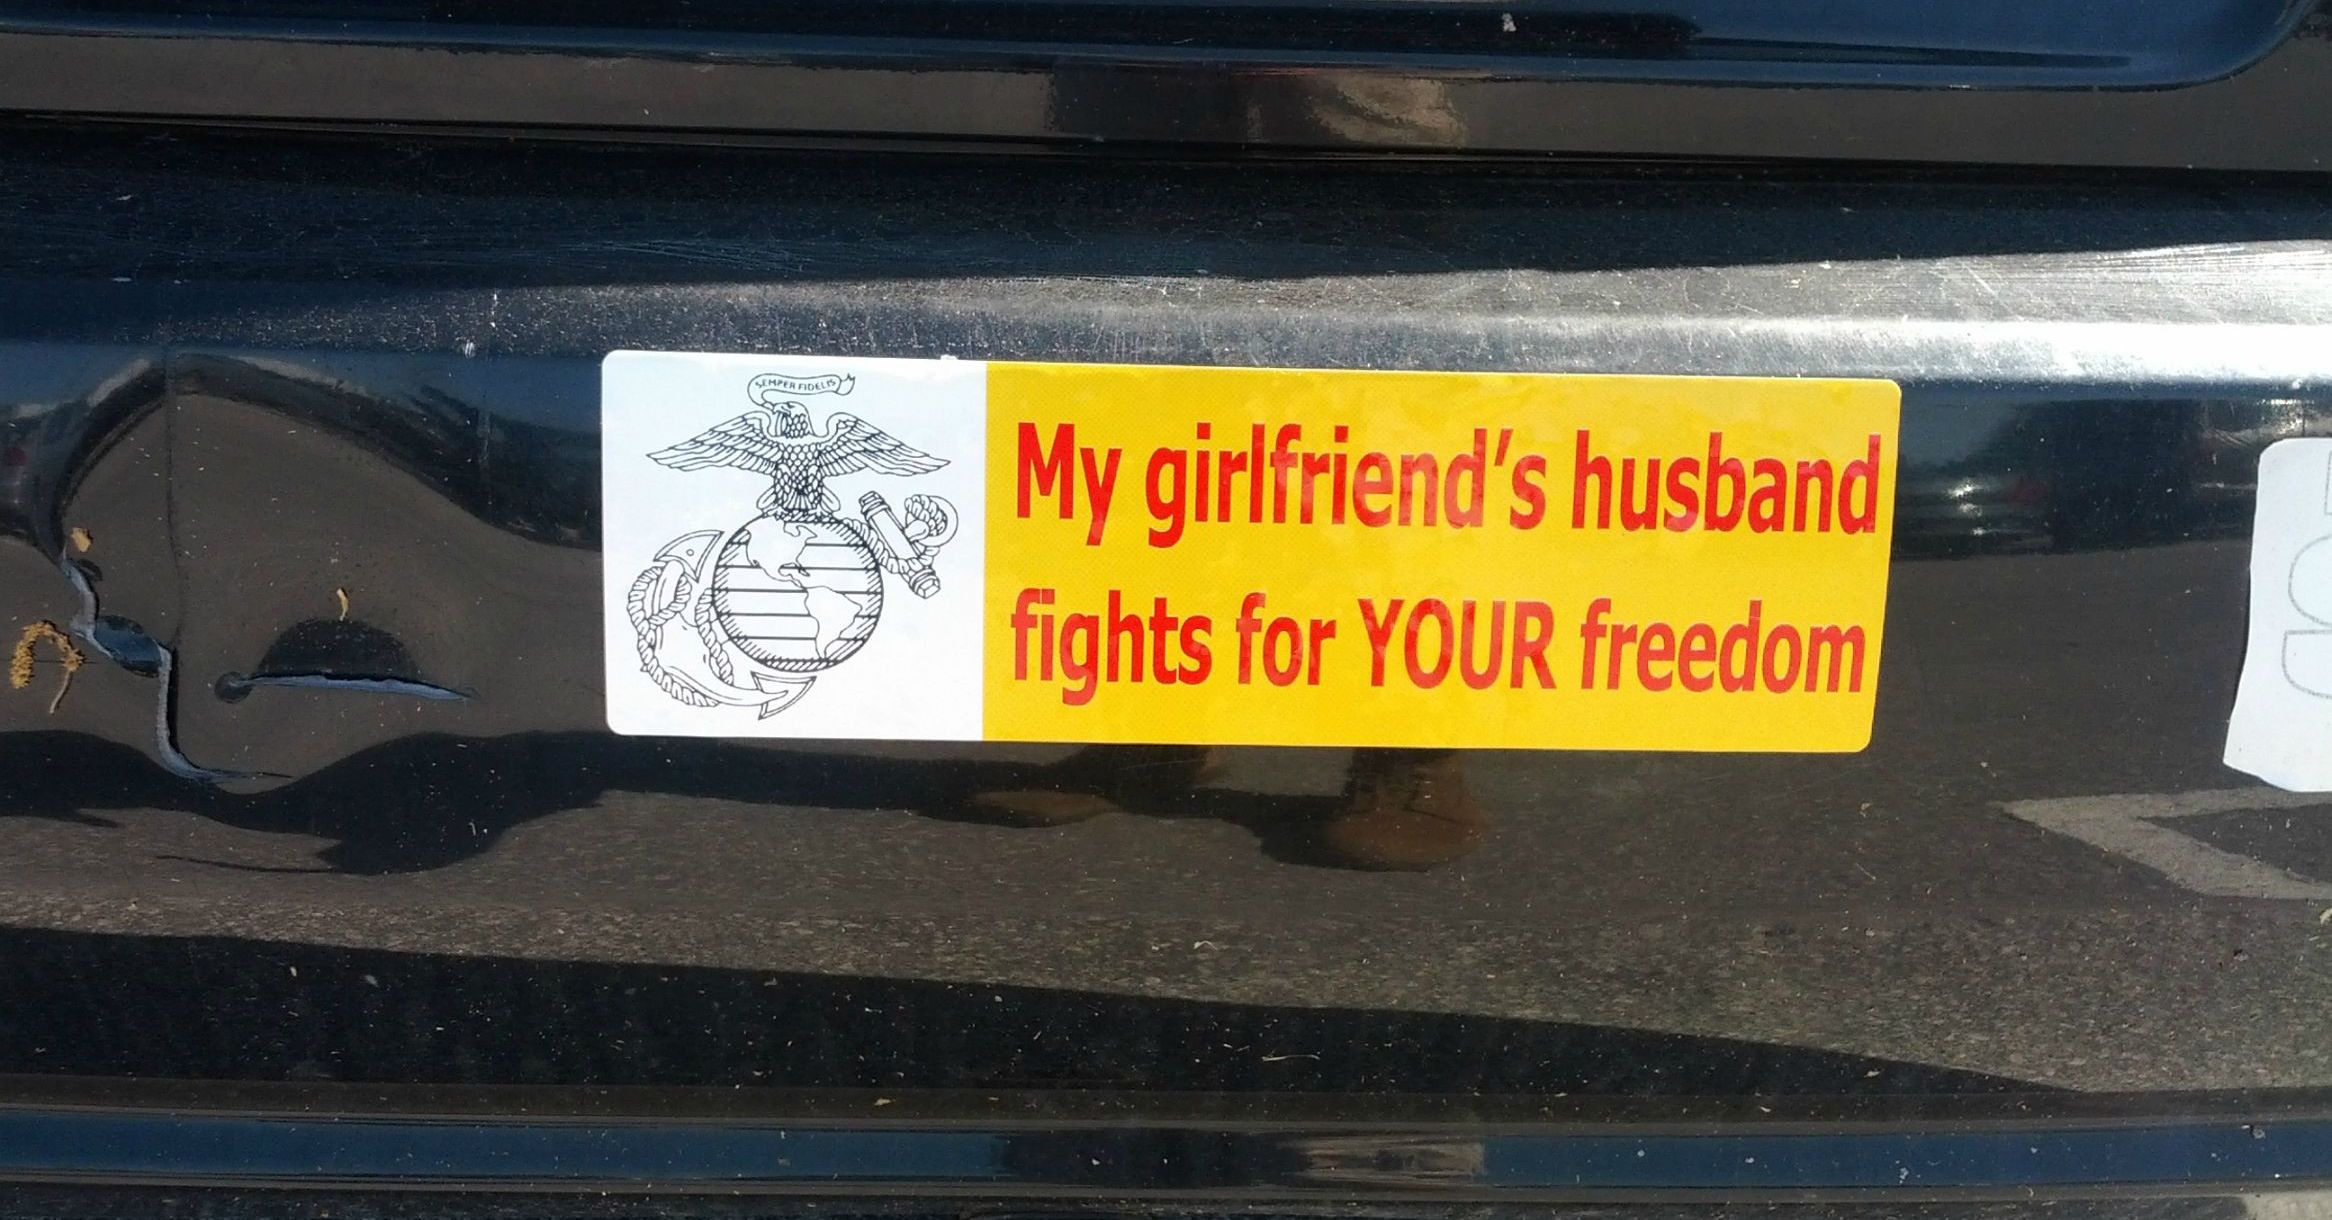 24 tasteless bumper stickers we almost feel bad for laughing at